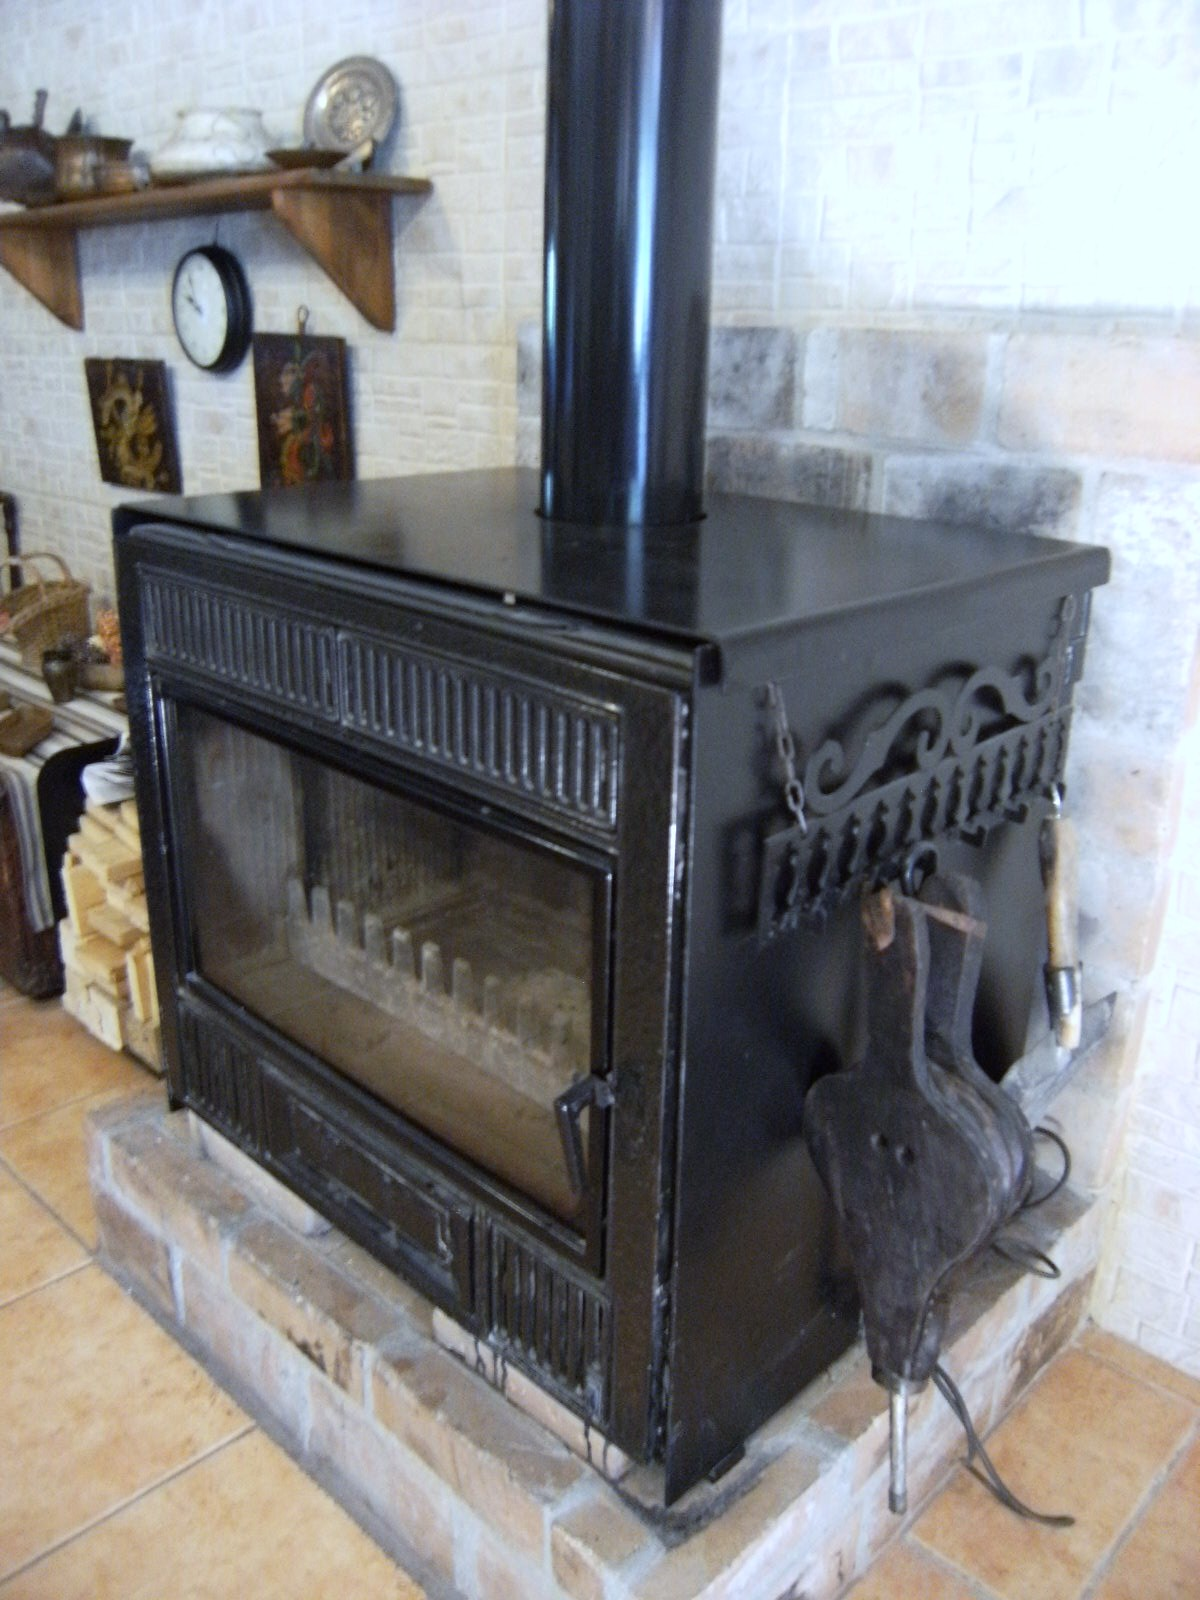 Para chimeneas cassette stunning simple perfect para - Cassette para chimeneas ...